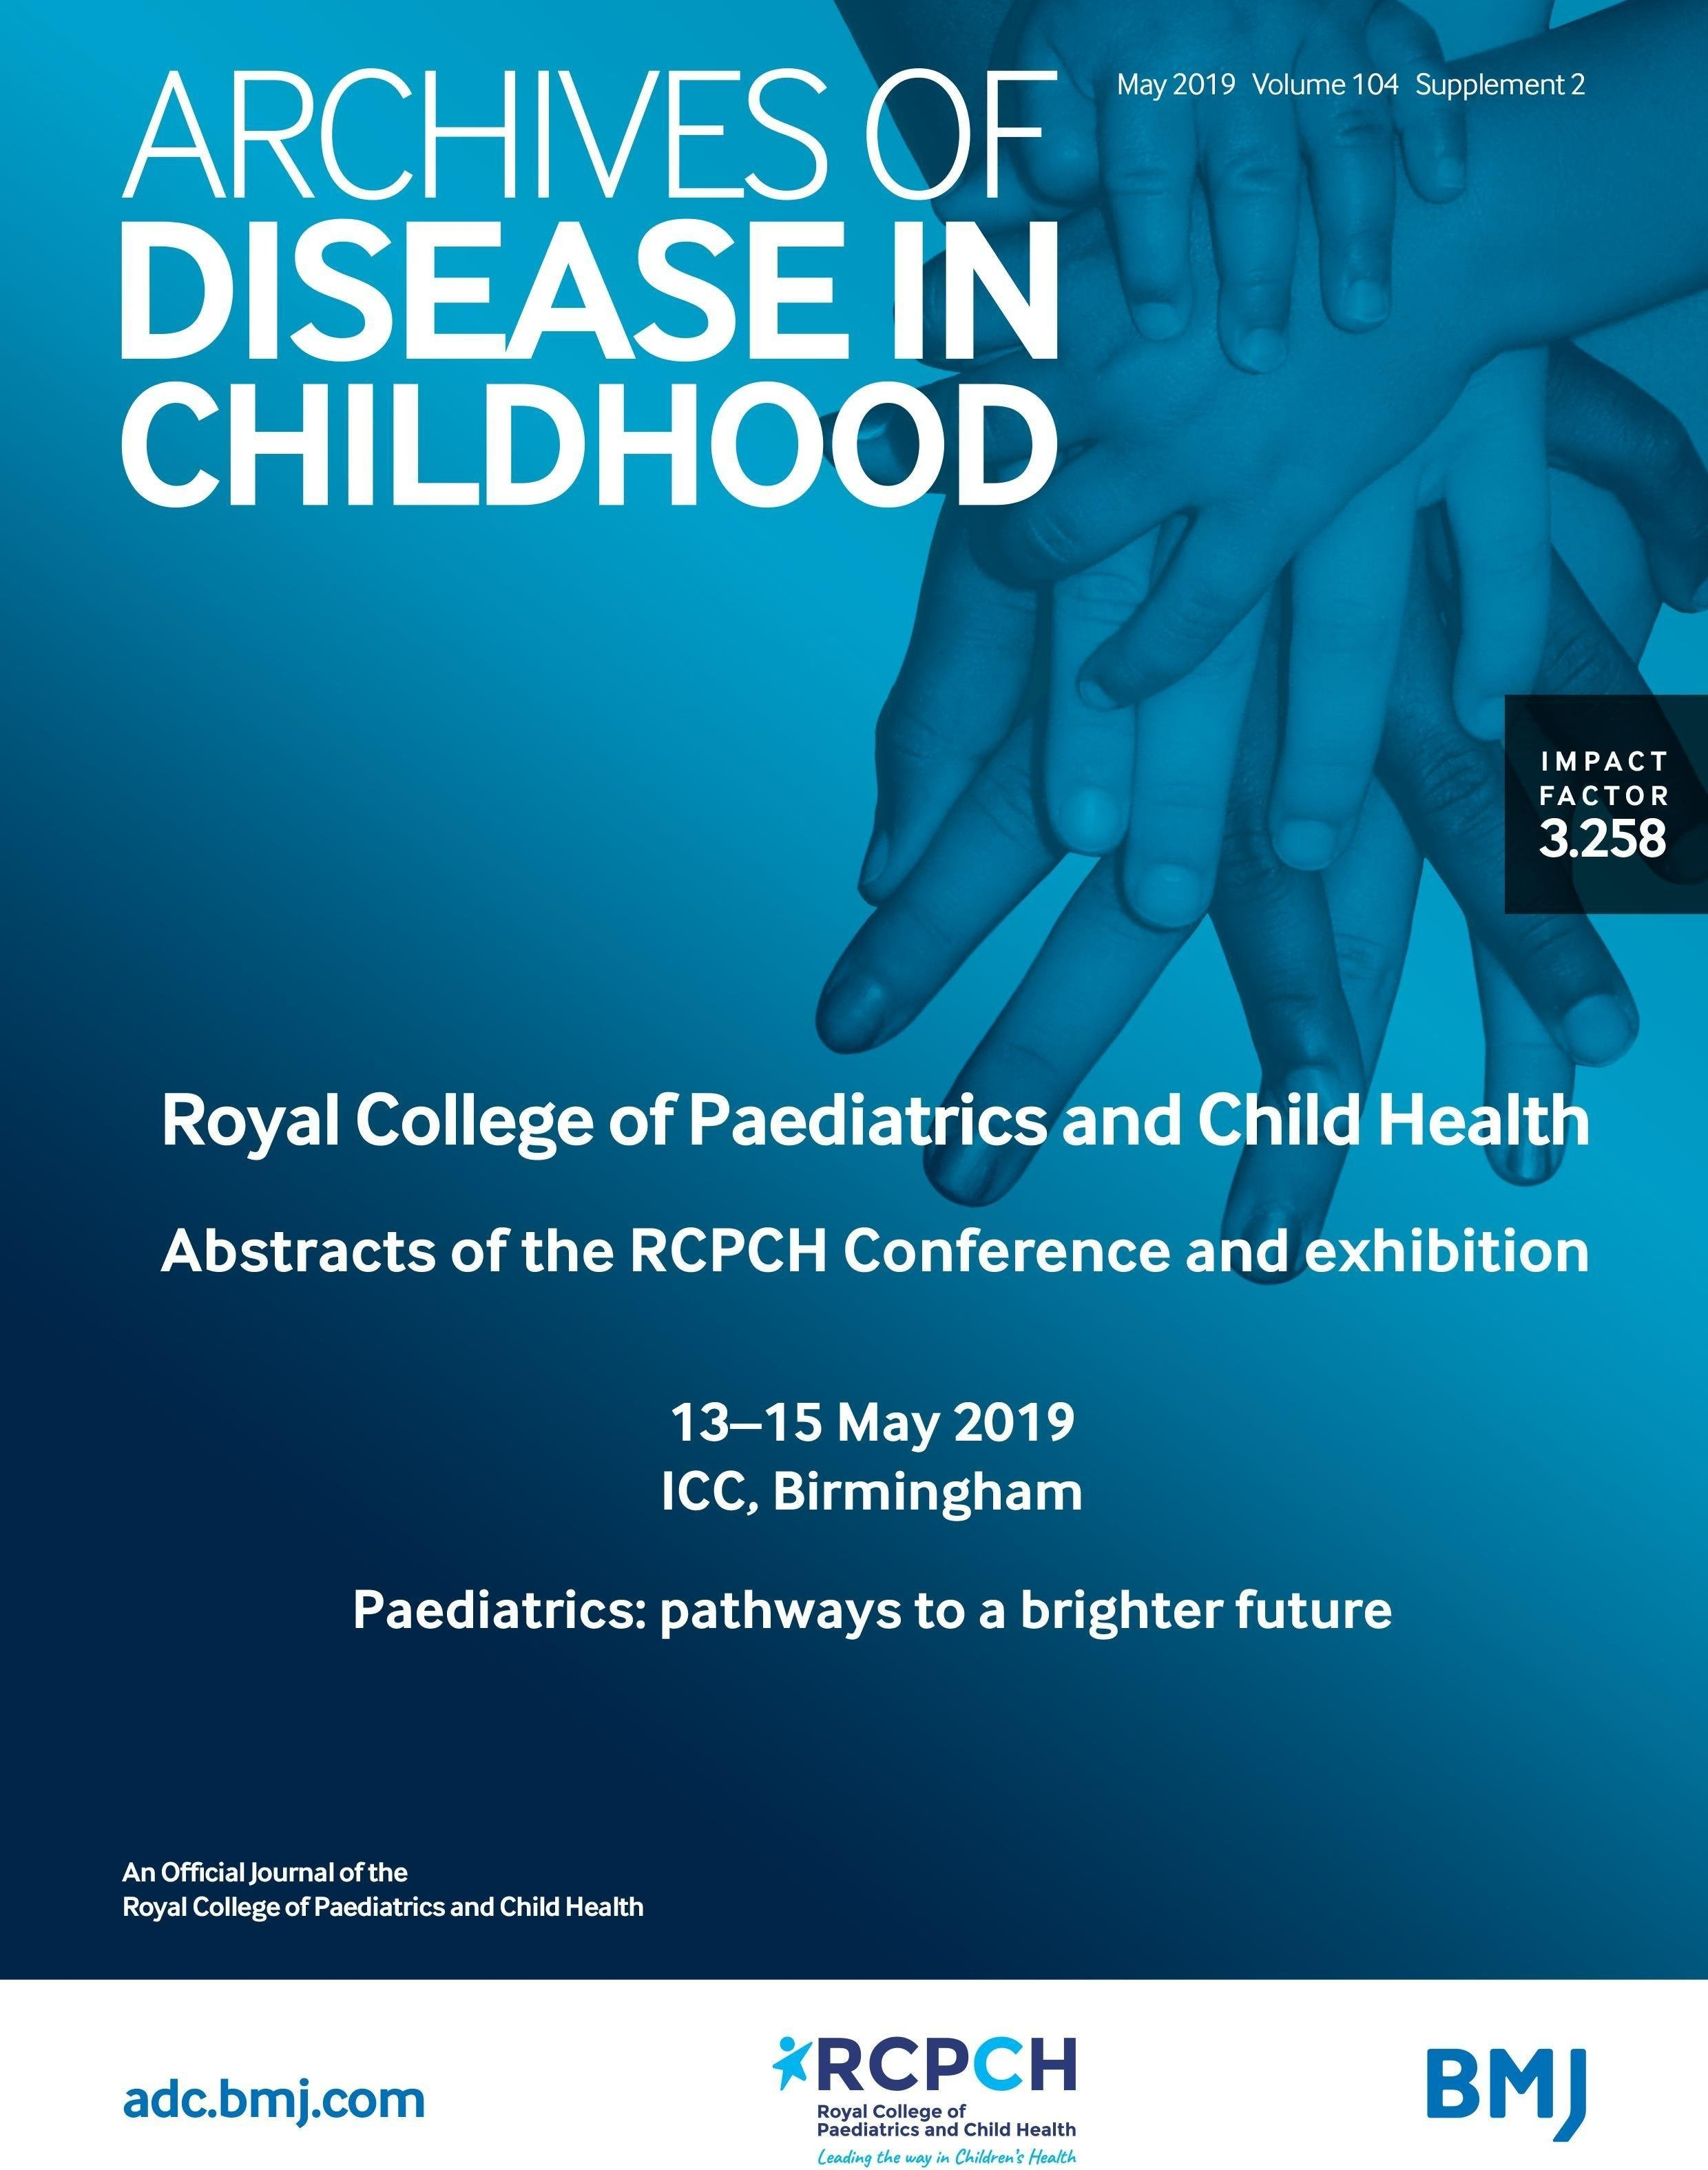 G575(p)acute Kidney Injury And Diabetic Ketoacidosis; Intravenous Fluids Or Ph The Culprit?   Archives Of Disease In Childhood